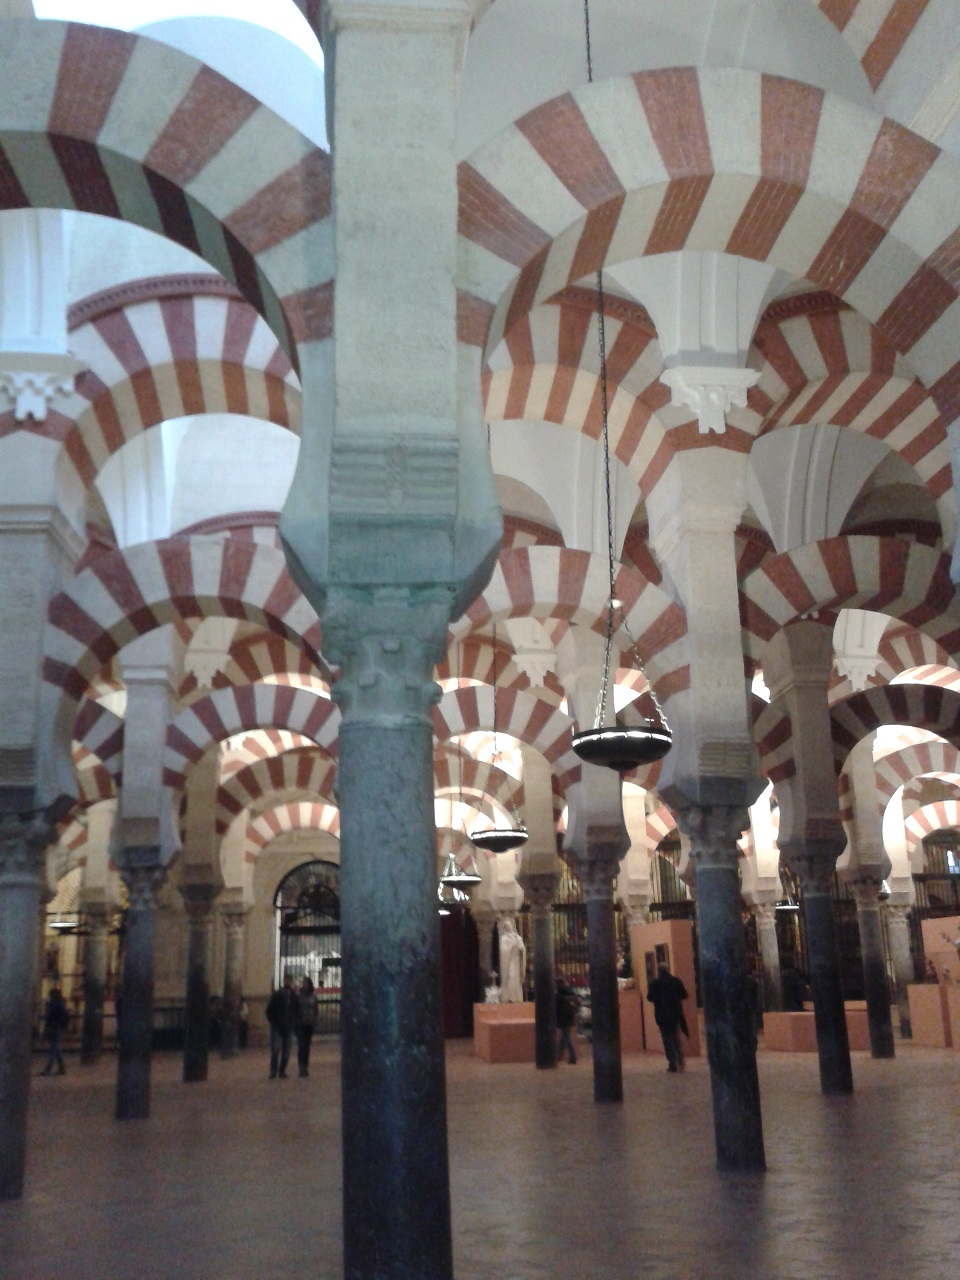 The Cordoba Mesquita